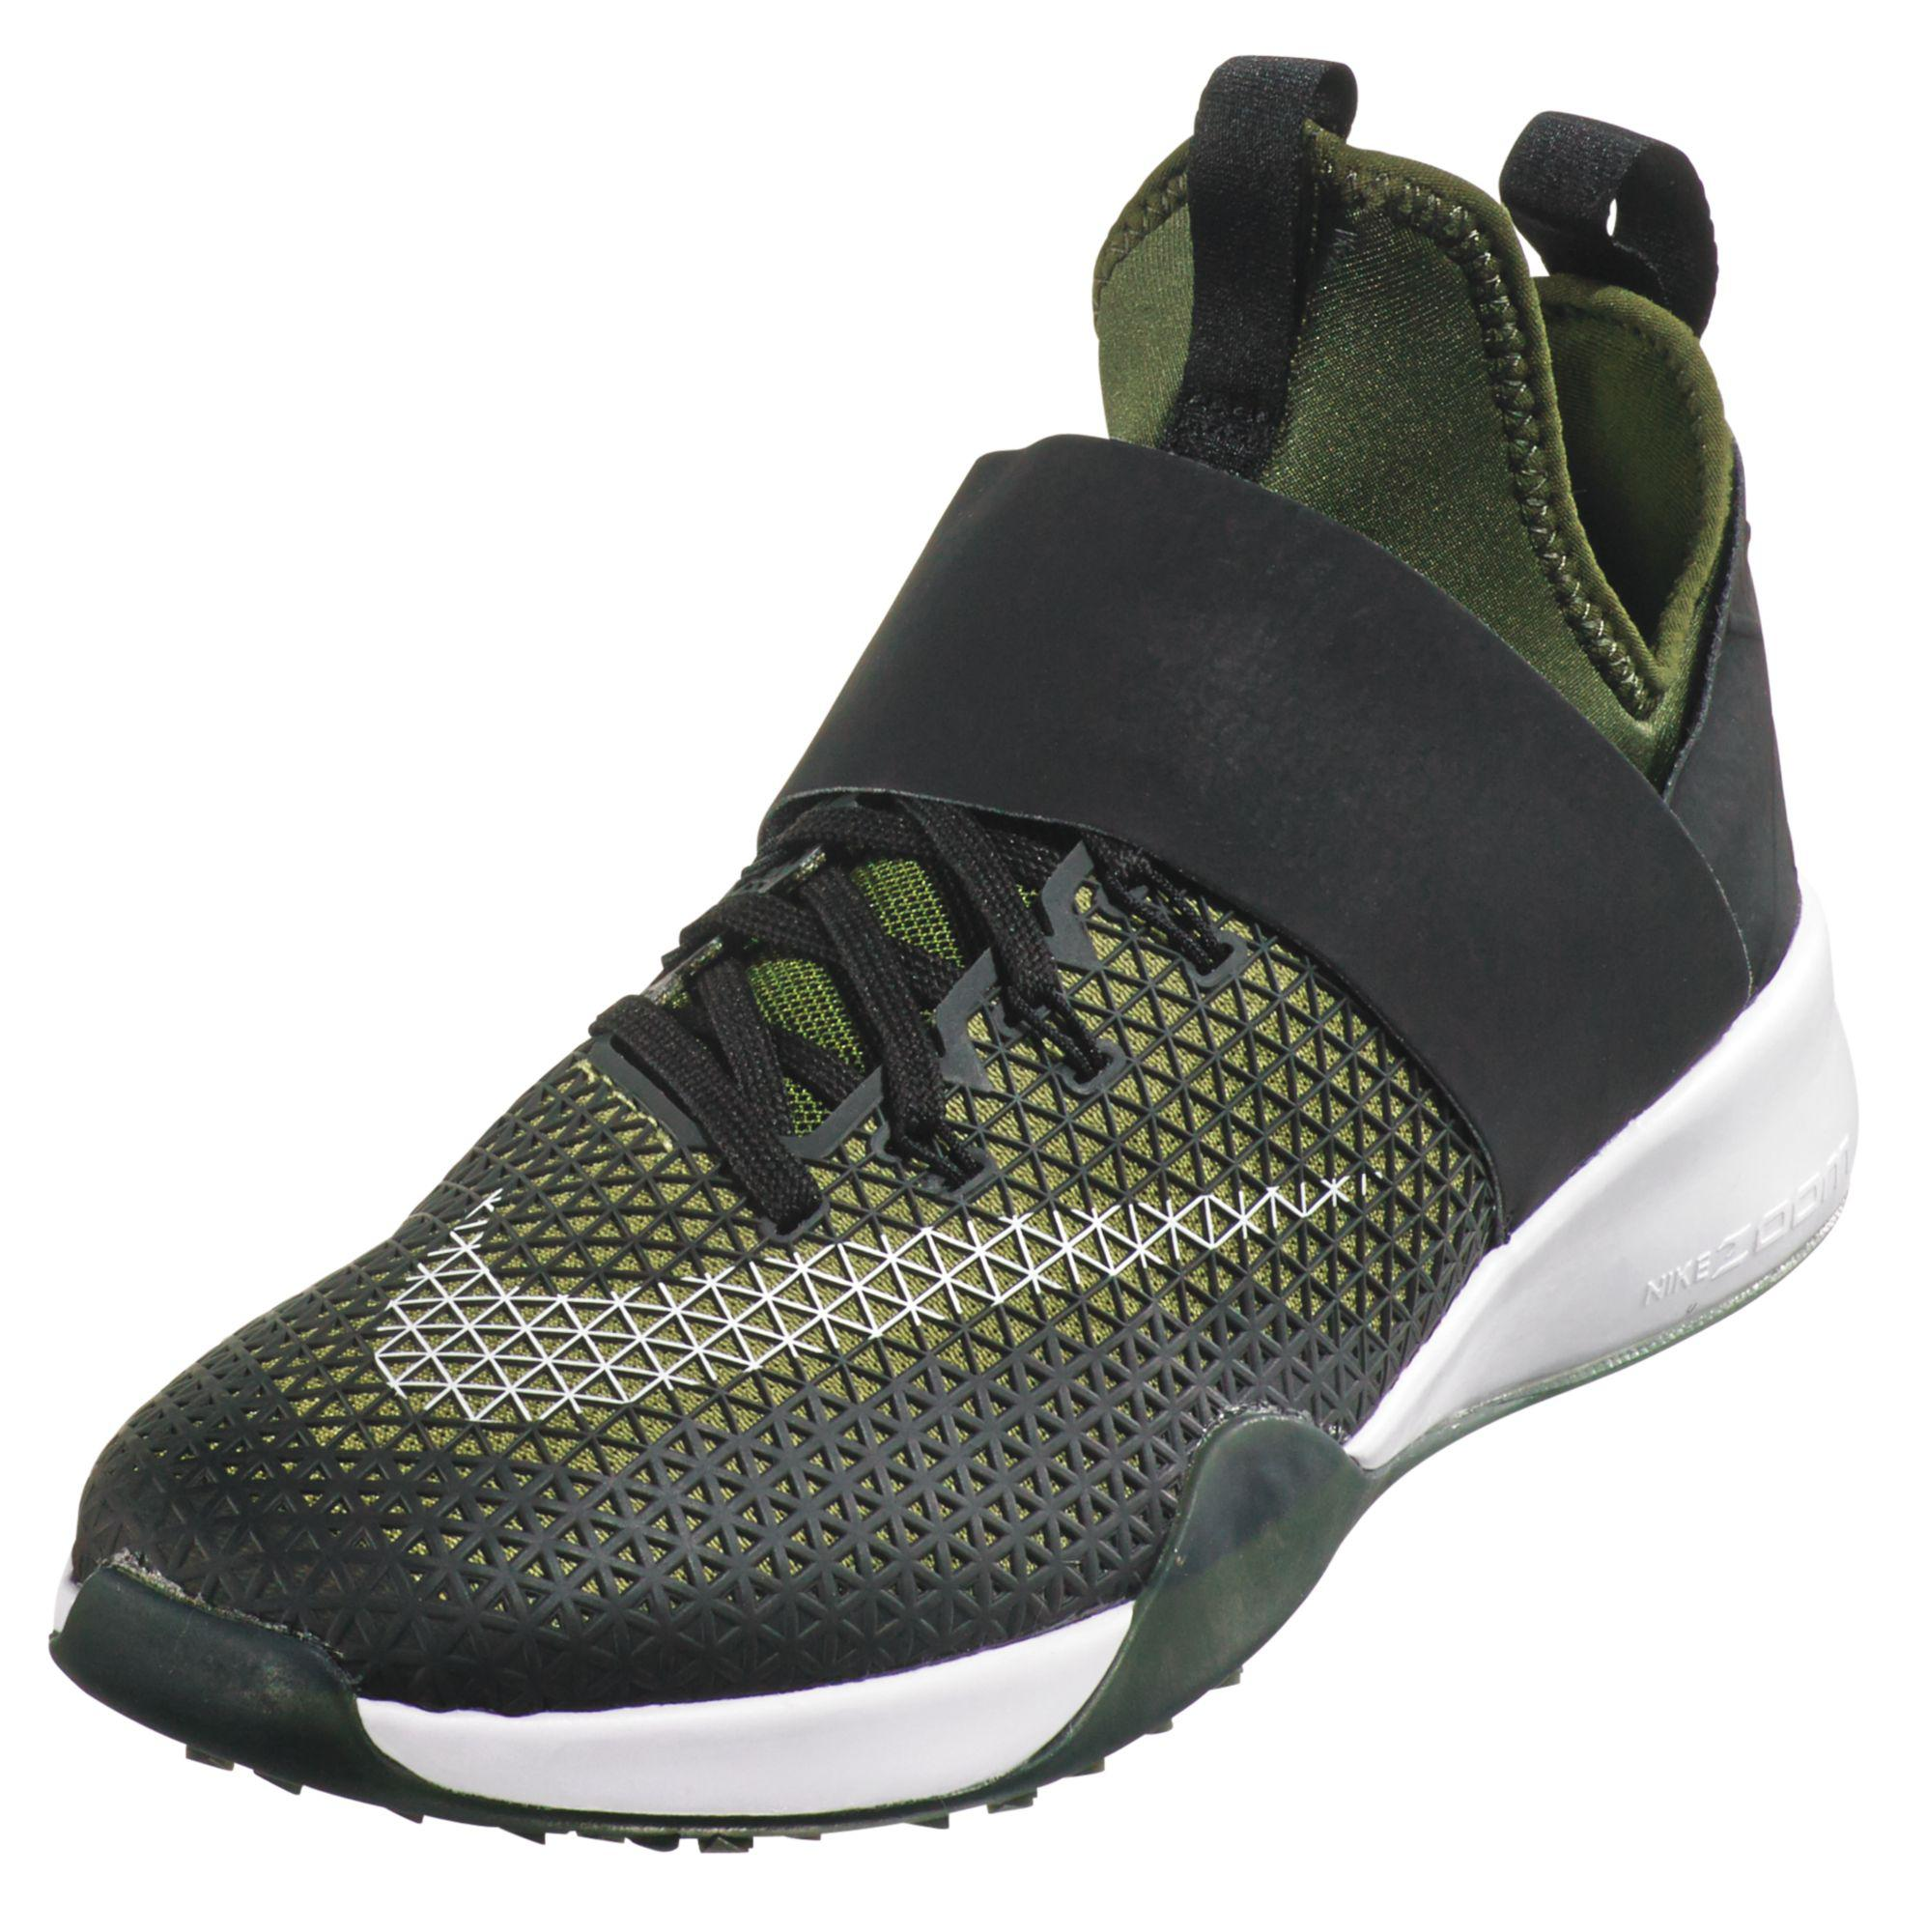 c08c4e390ca140 Lyst - Nike Air Zoom Strong Training Shoes in Green for Men